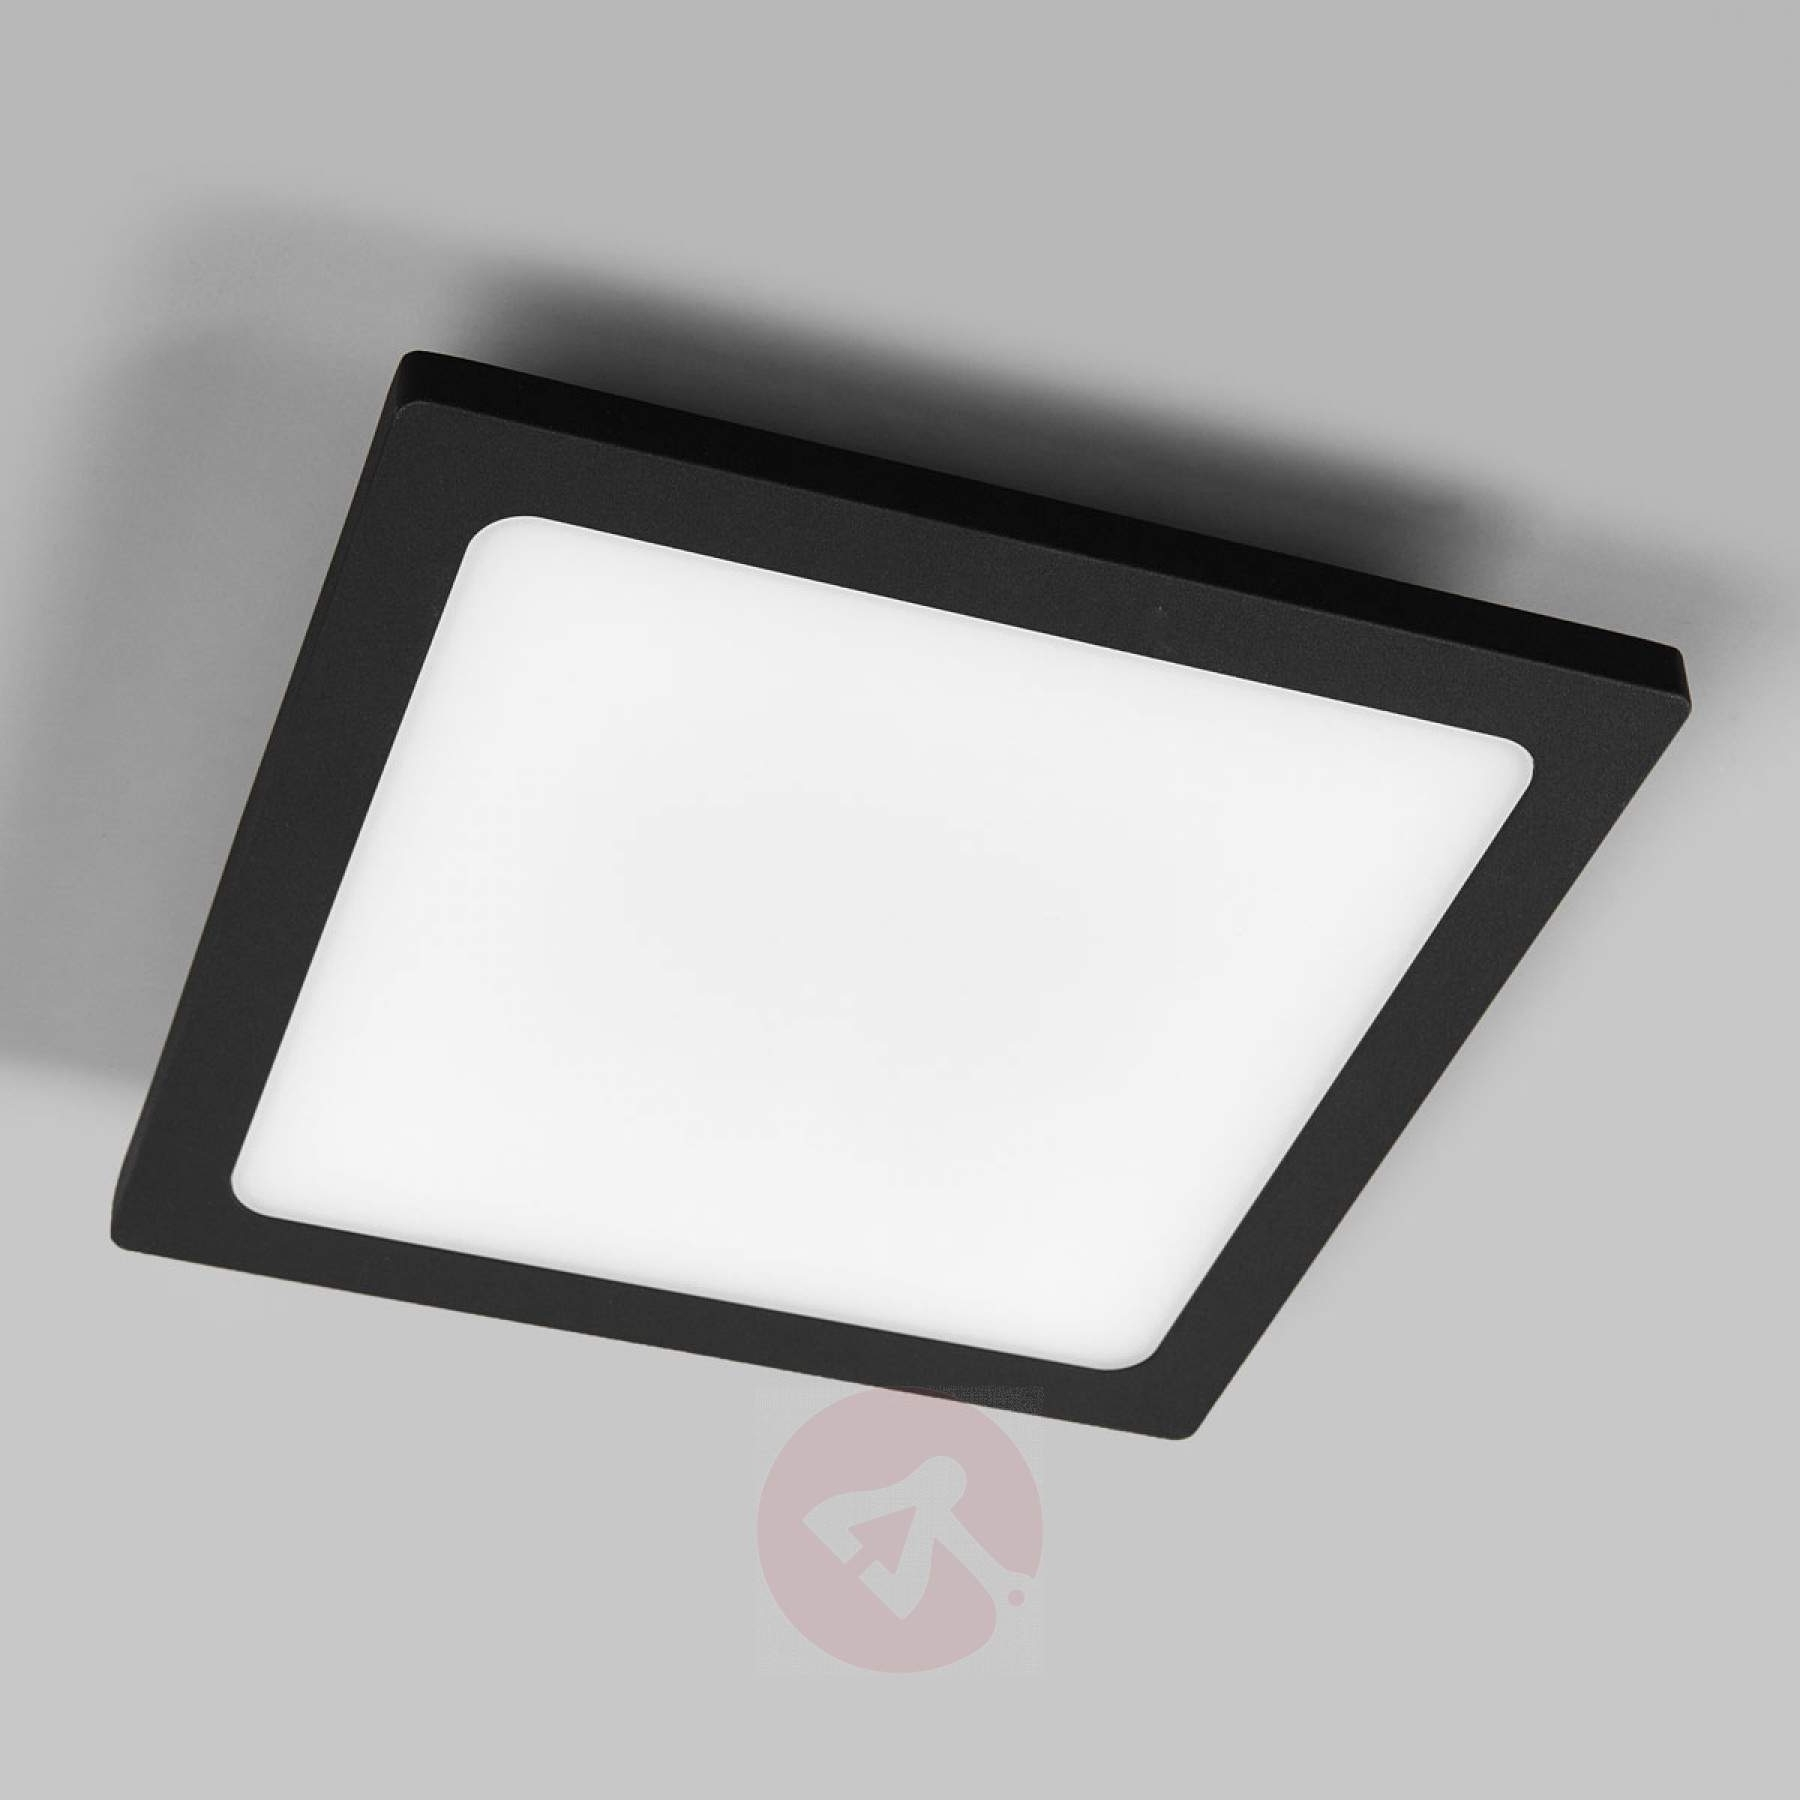 Well Known Outdoor Ceiling Lights With Sensor In Mabella Led Outdoor Ceiling Lamp With Sensor (View 19 of 20)